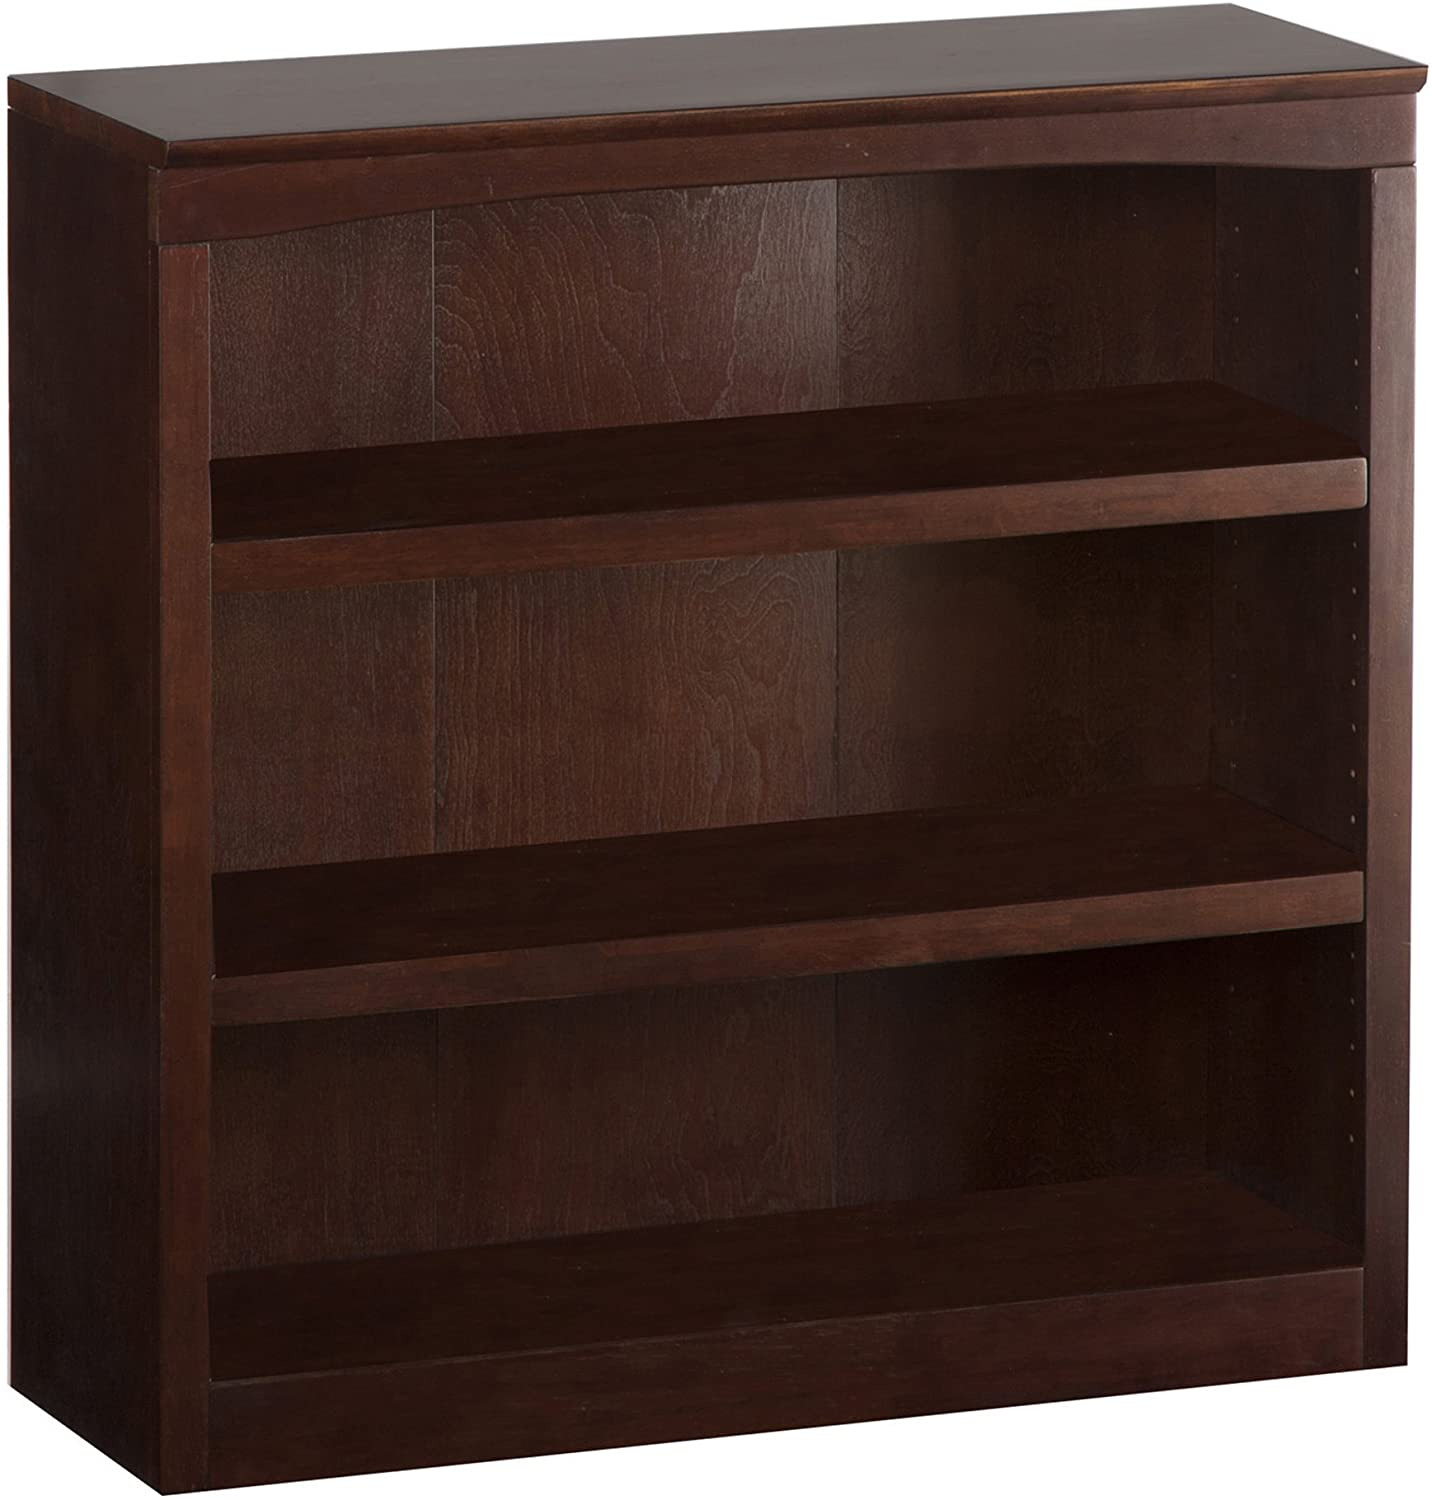 Atlantic Furniture Harvard Book Shelf, Antique Walnut, 36-Inch